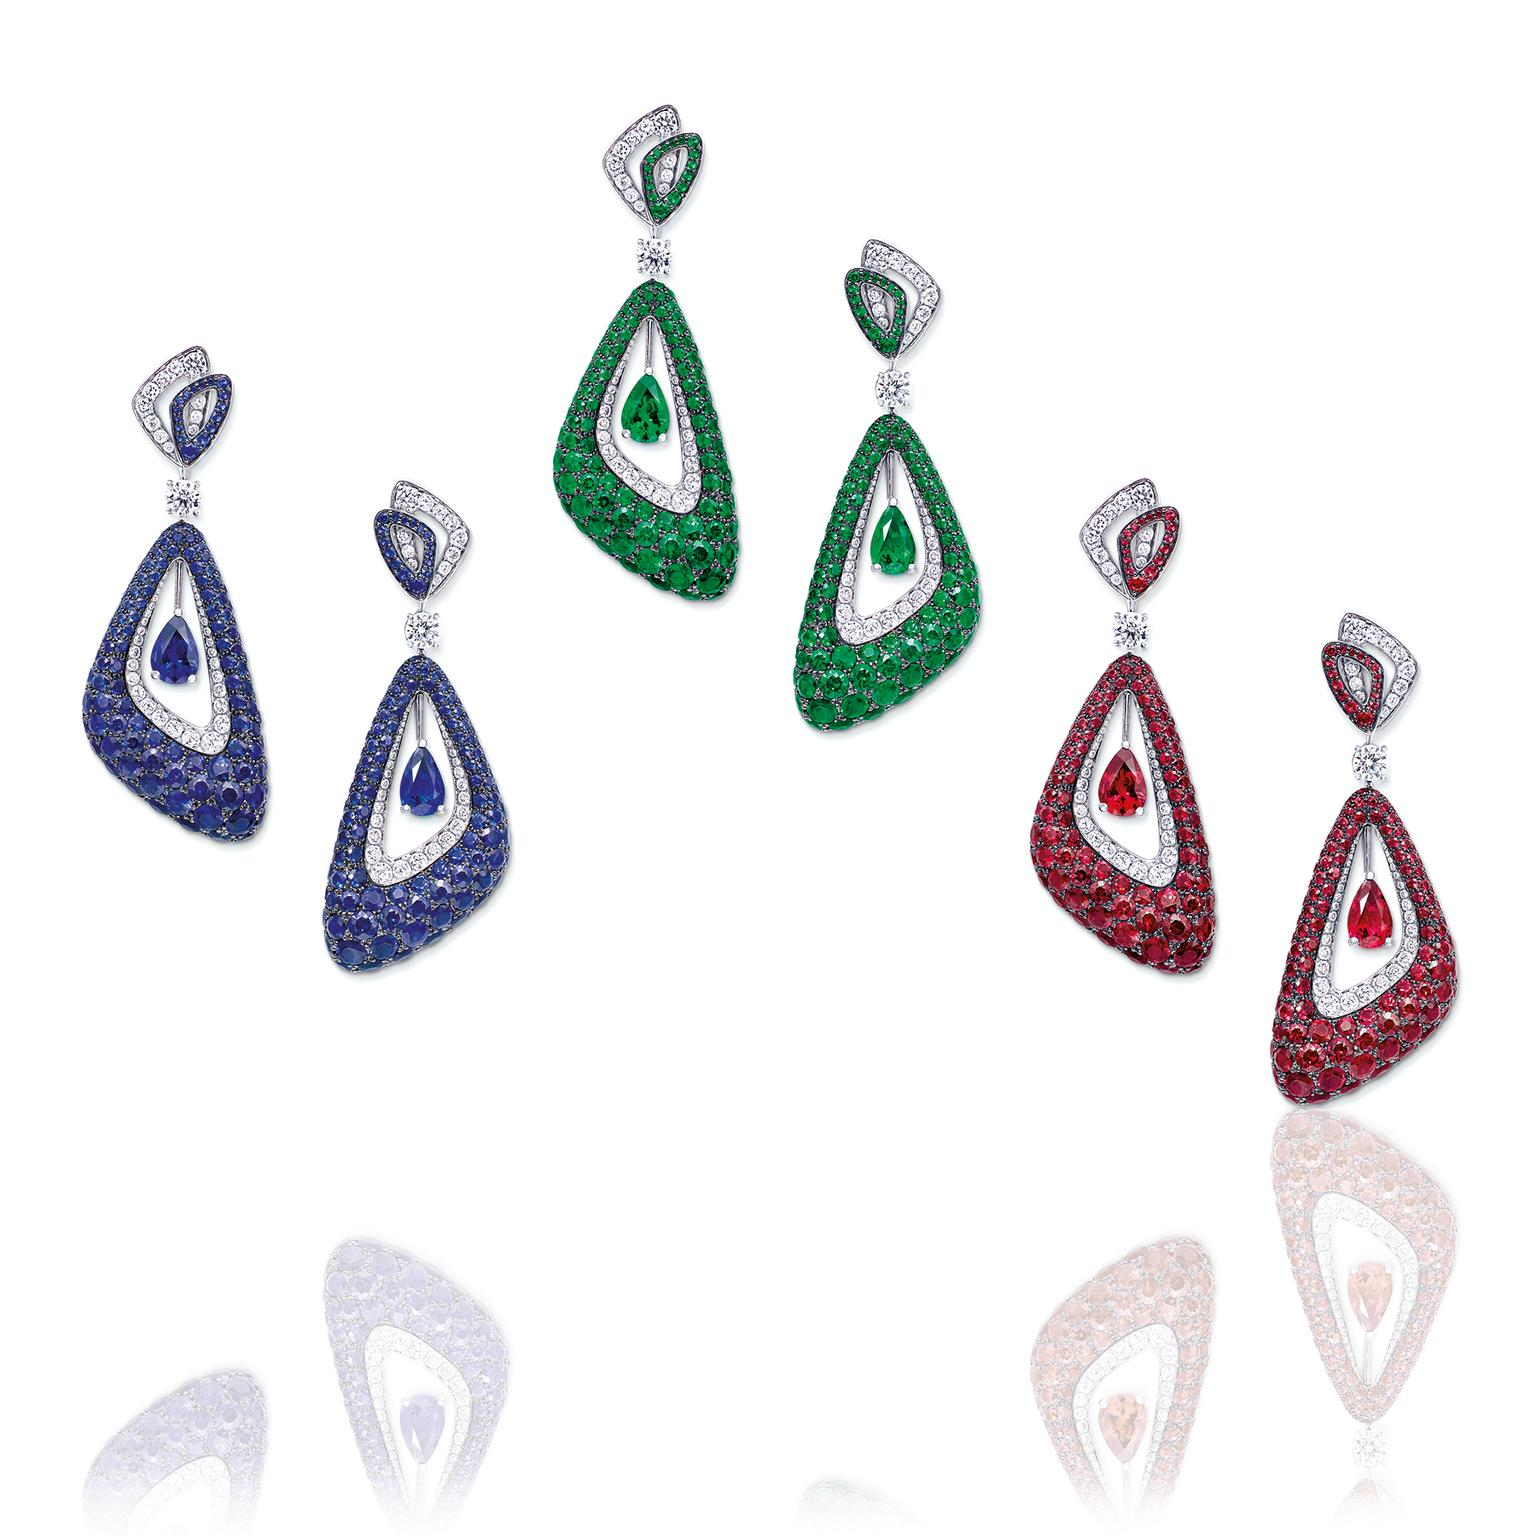 Graff Luna earrings set with sapphires, emeralds and rubies